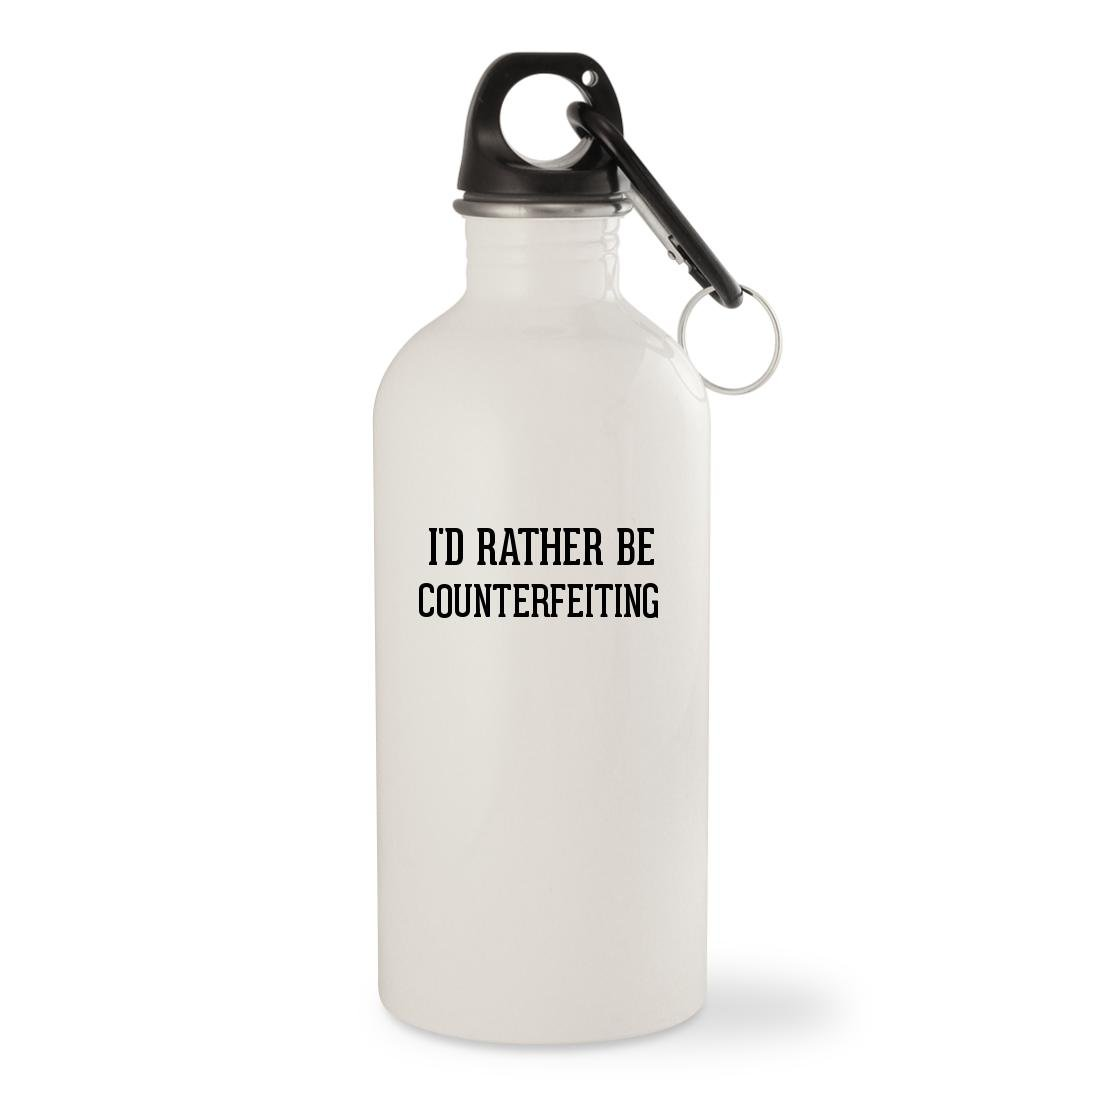 I'd Rather Be COUNTERFEITING - White 20oz Stainless Steel Water Bottle with Carabiner